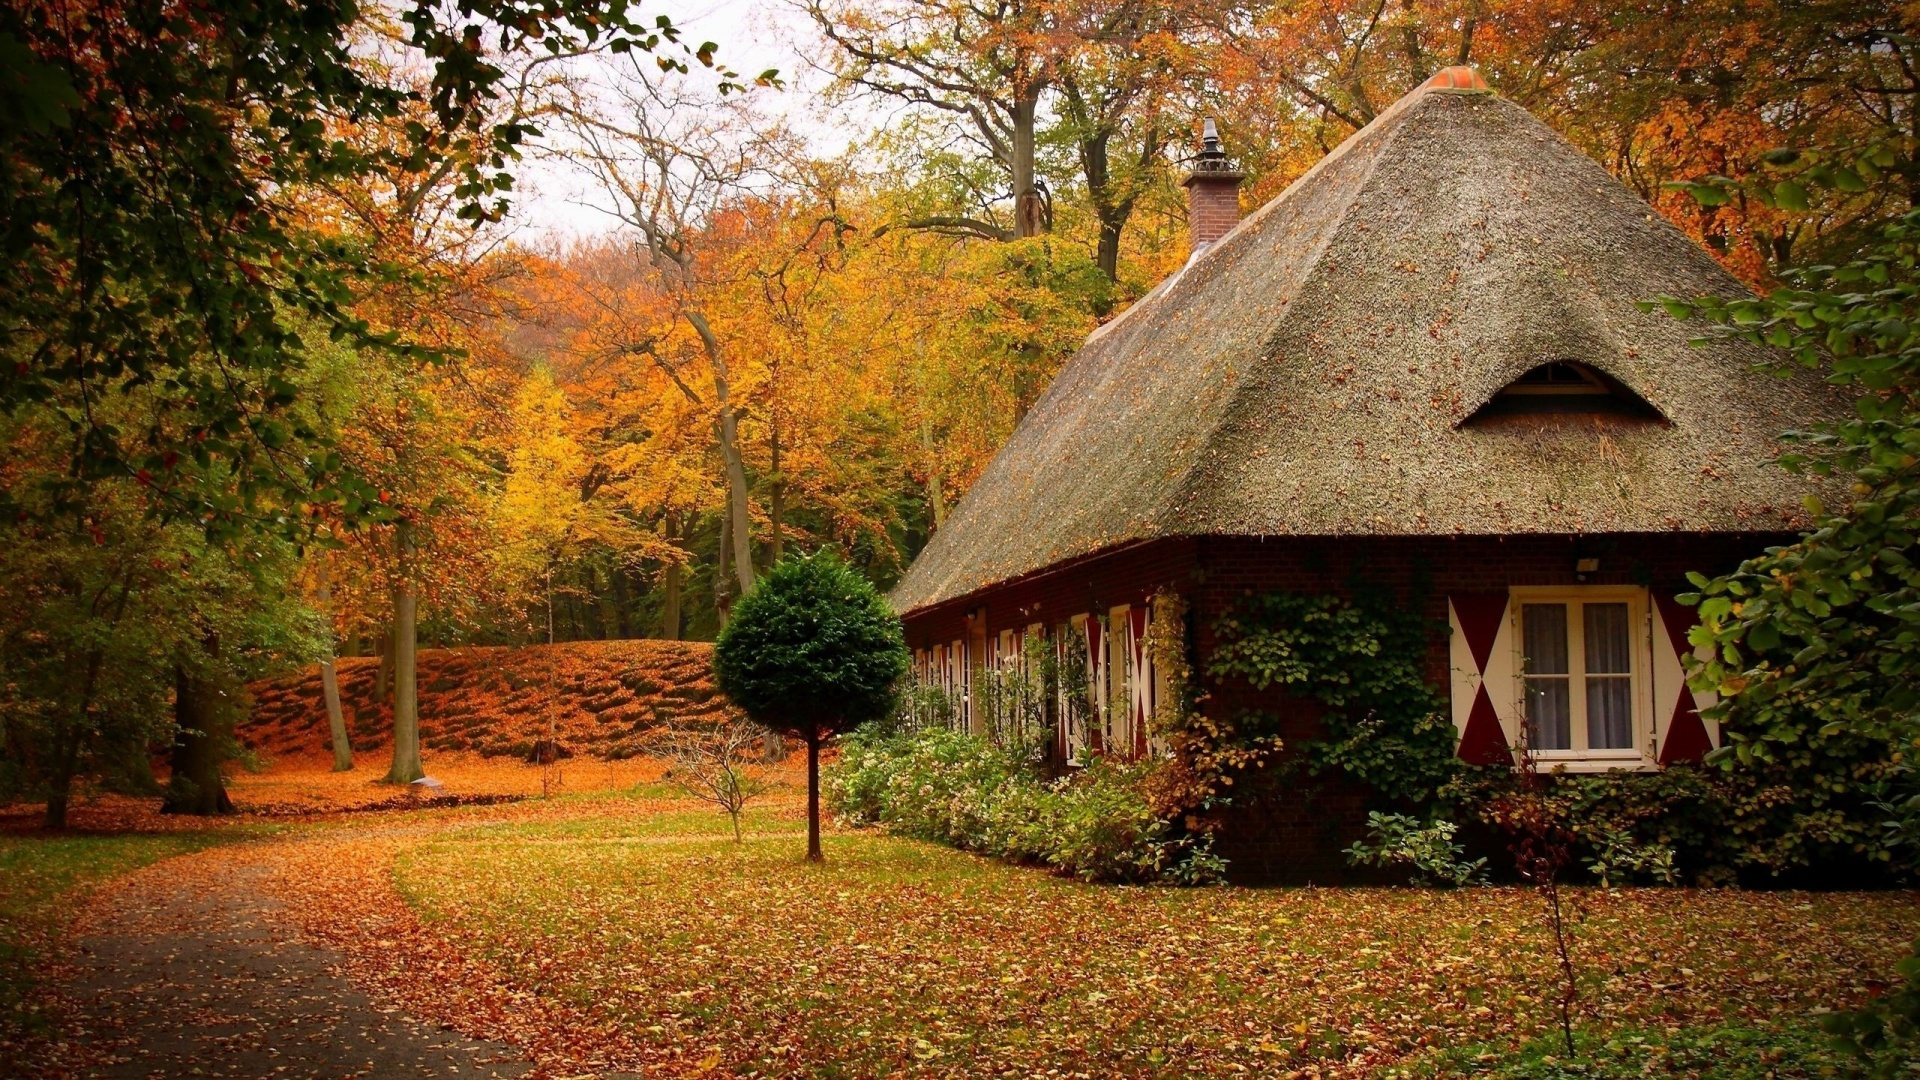 1920x1080 Country House in Autumn desktop PC and Mac wallpaper 1920x1080